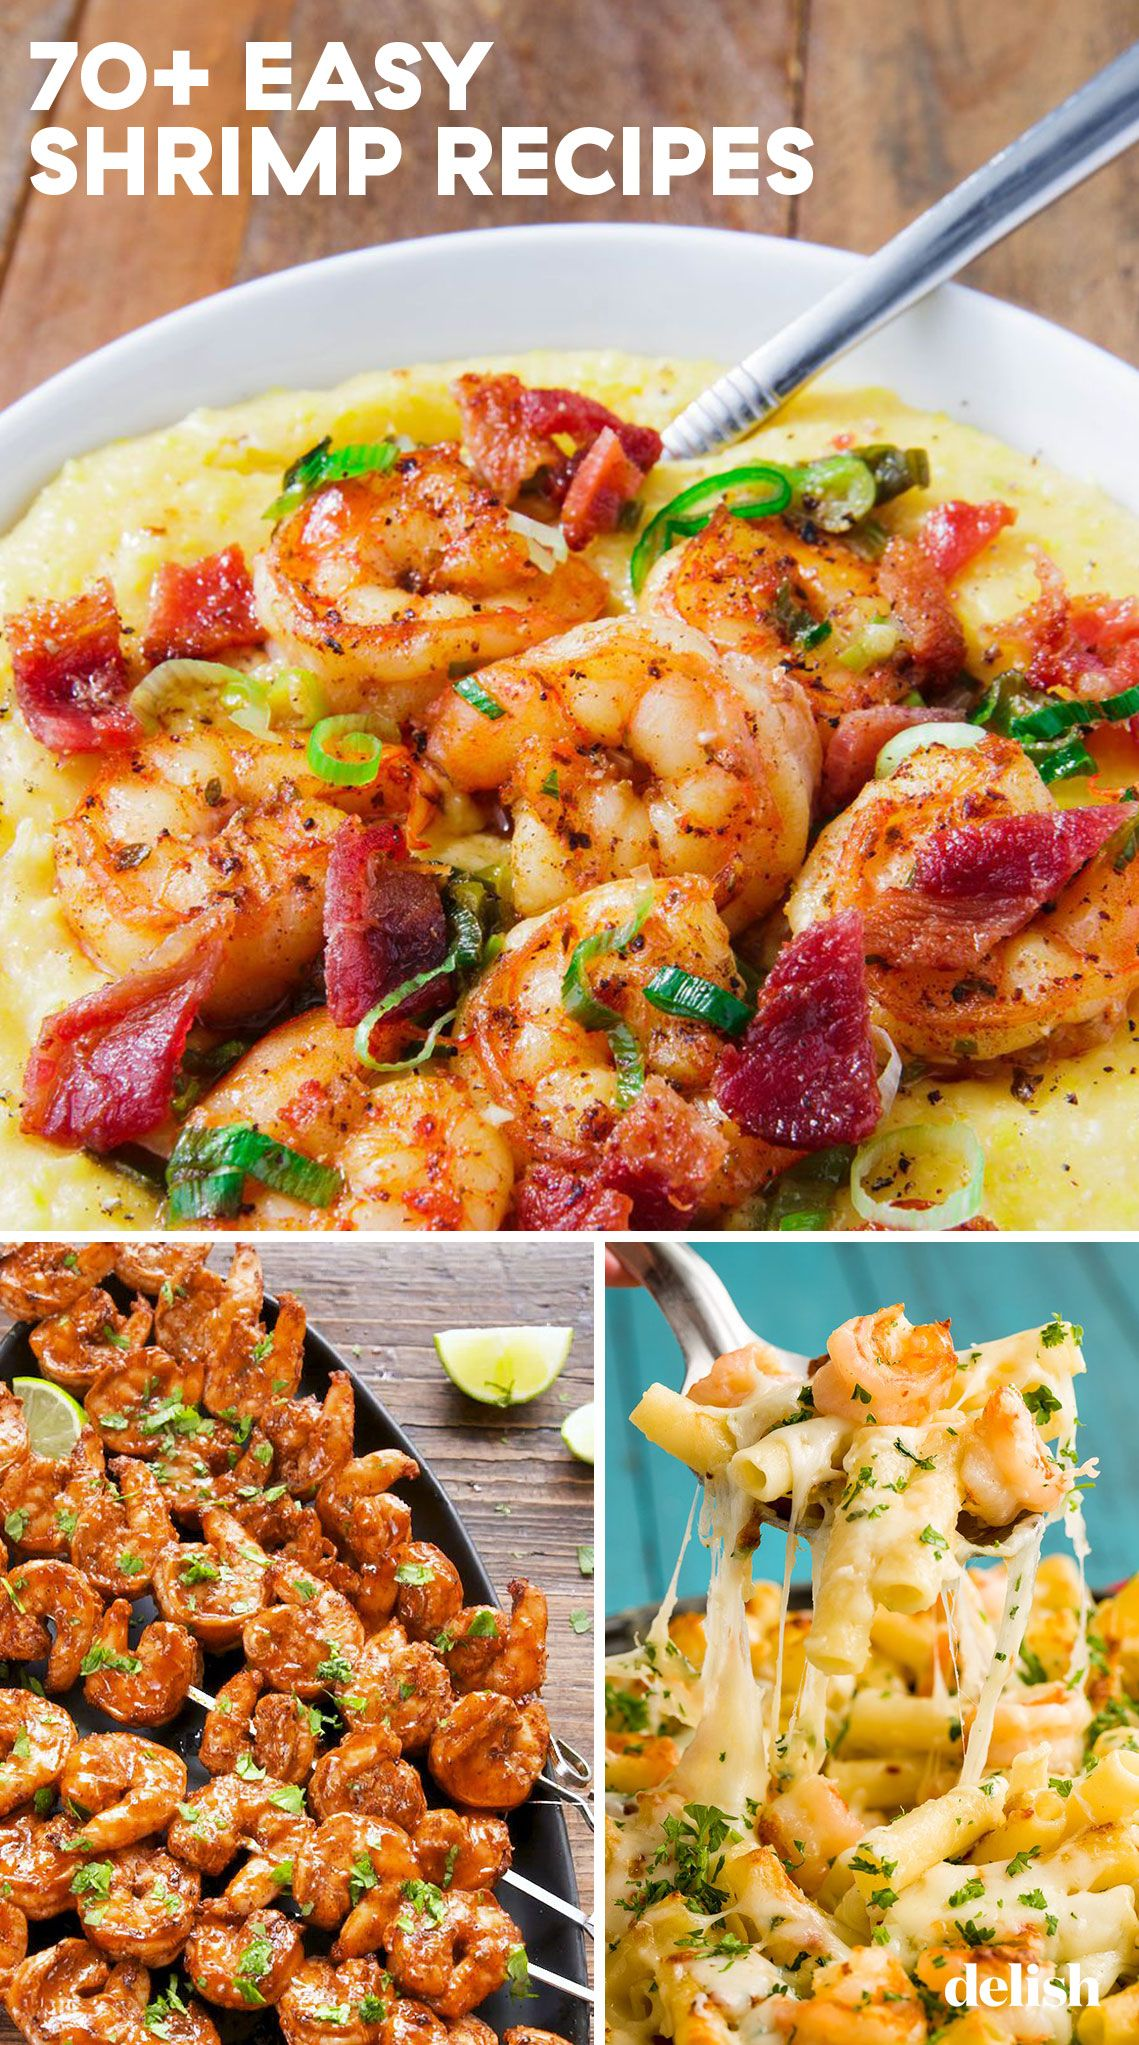 70+ Easy Shrimp Recipes images